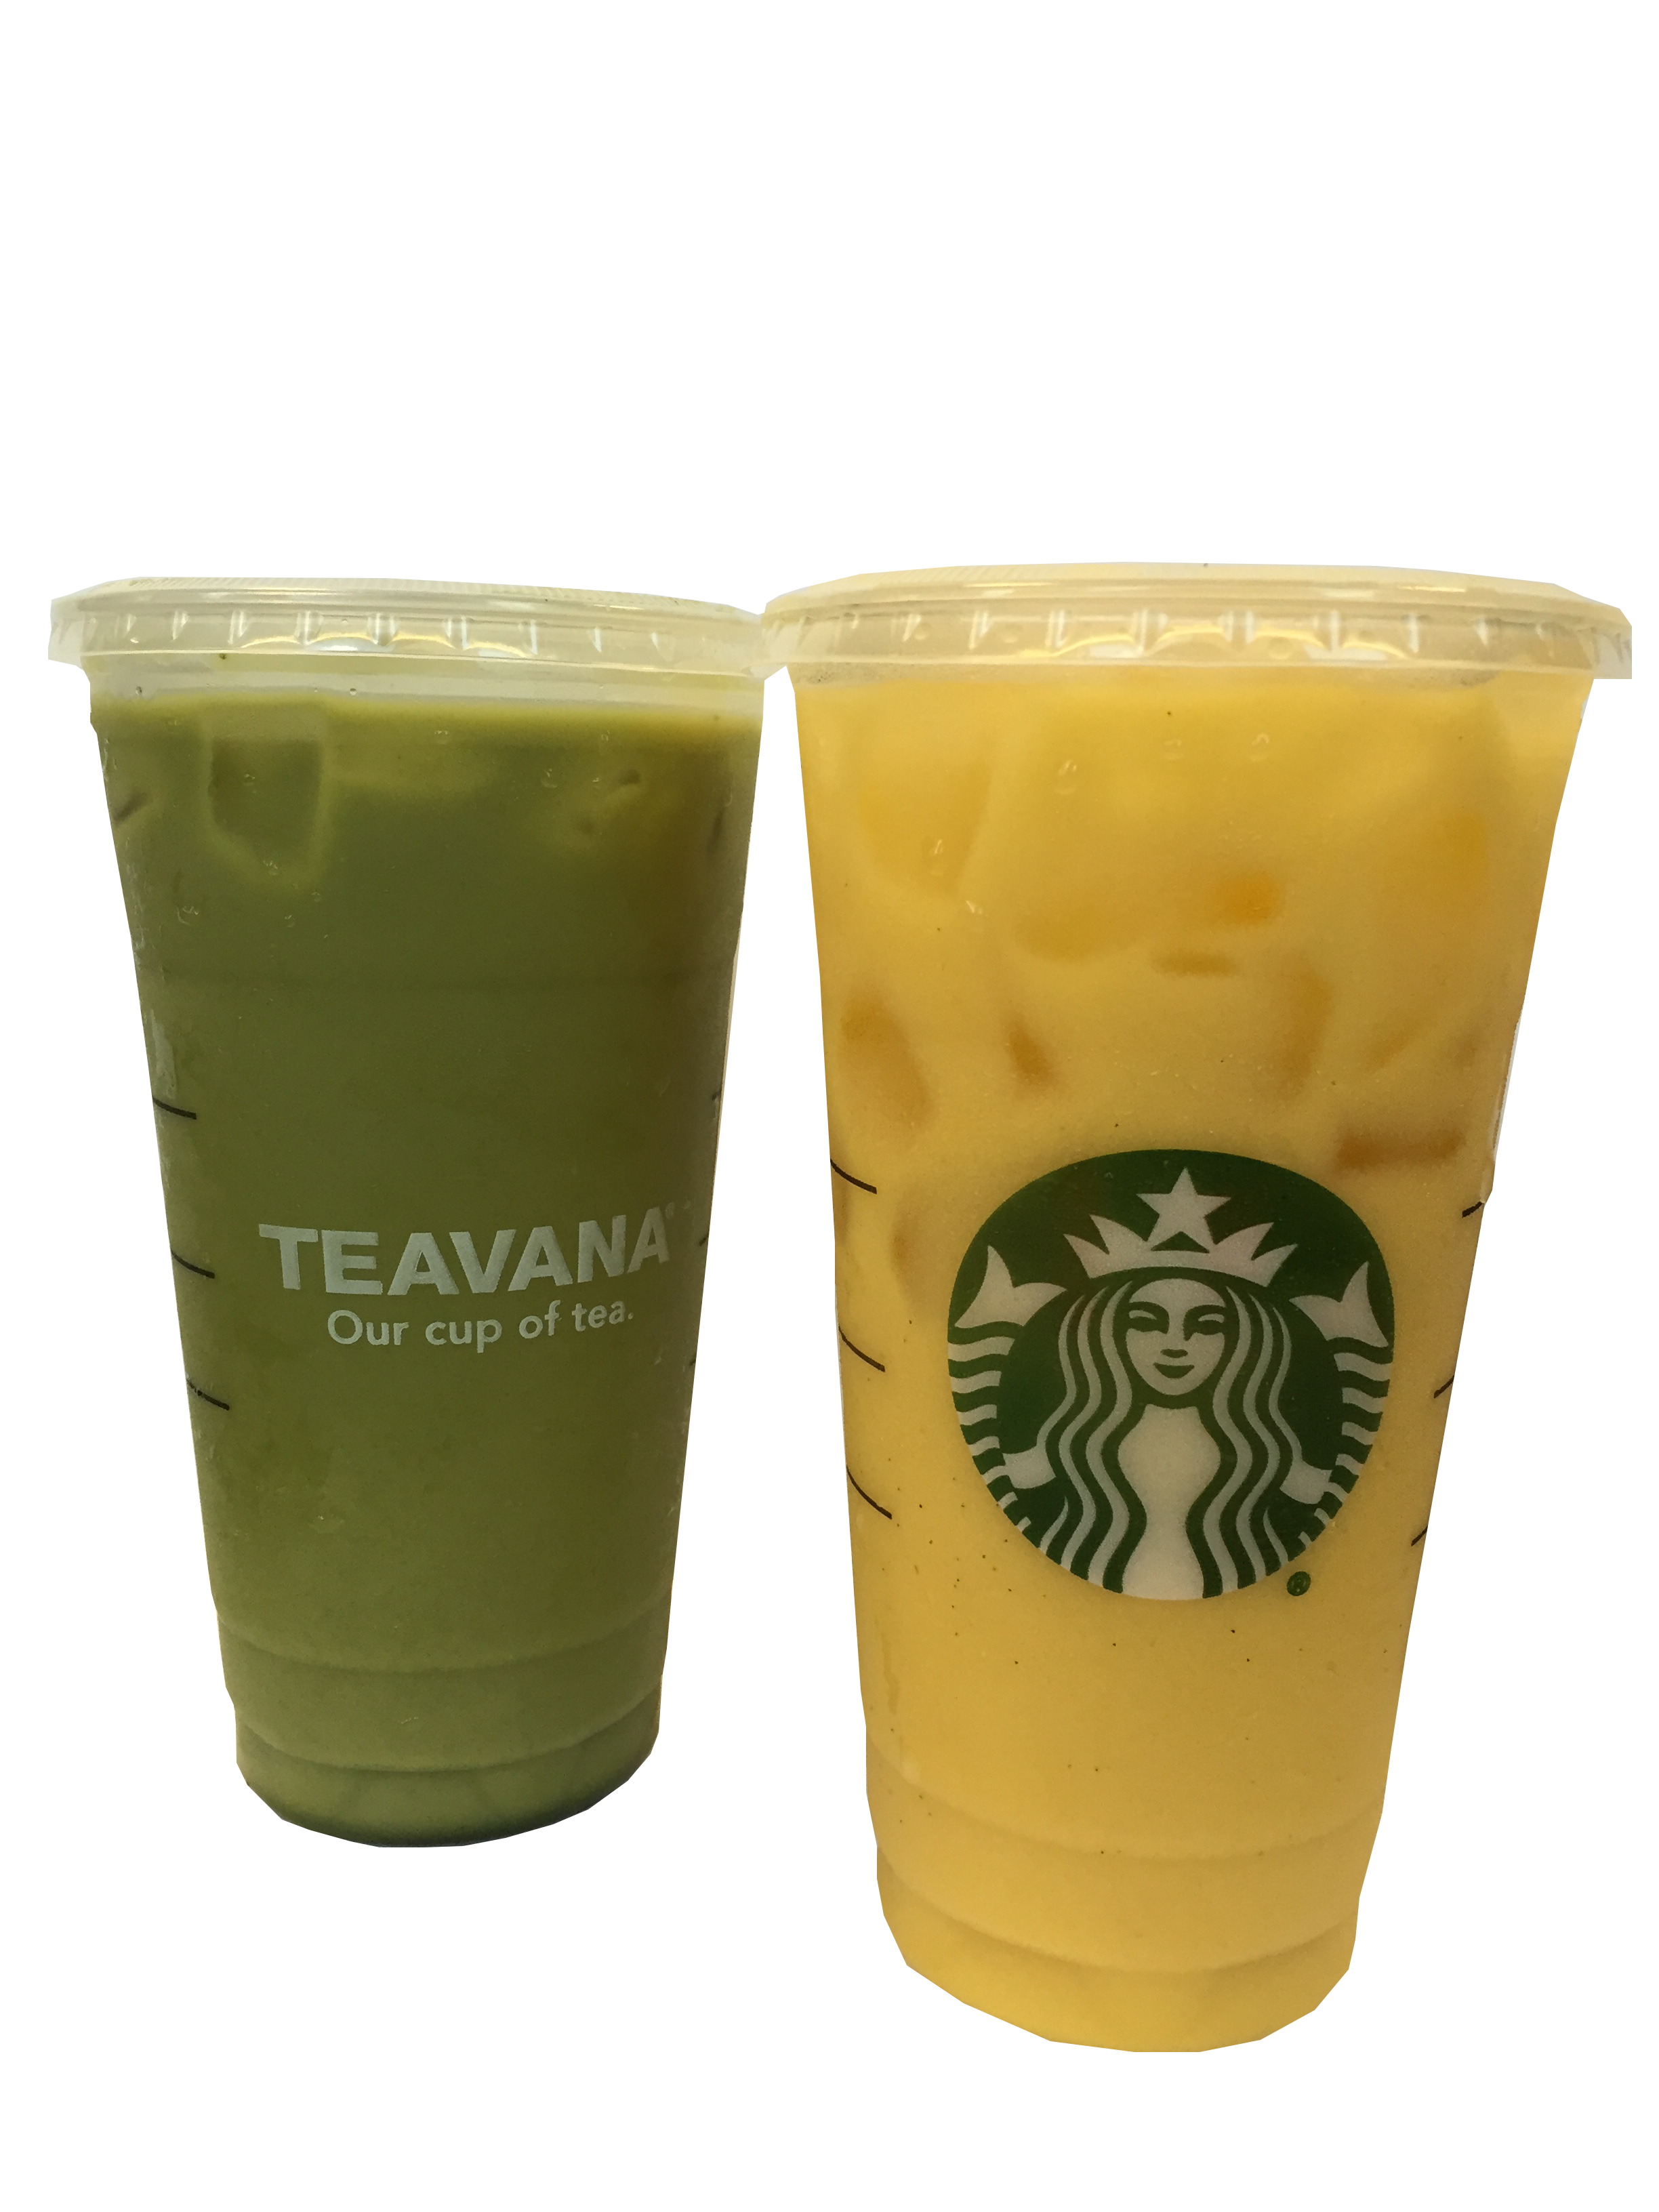 Starbucks Has Two More 'Secret Drinks' to Try